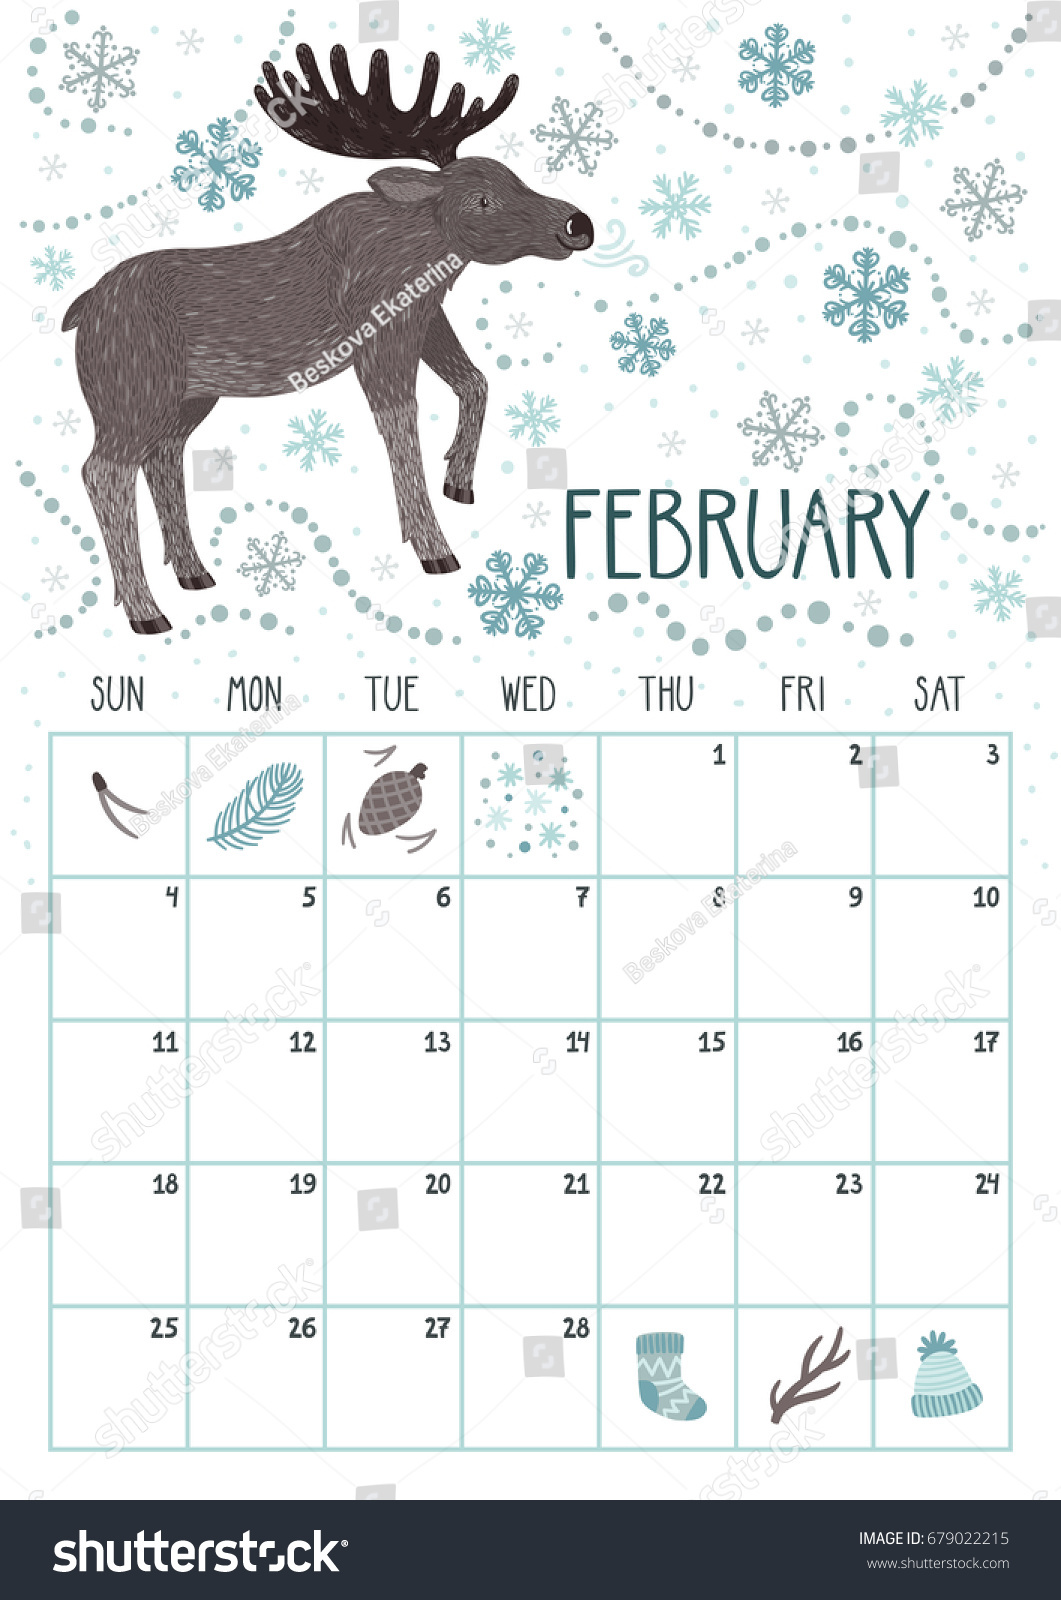 Vector Monthly Calendar Cute Elk February Stock Vector 679022215 ...